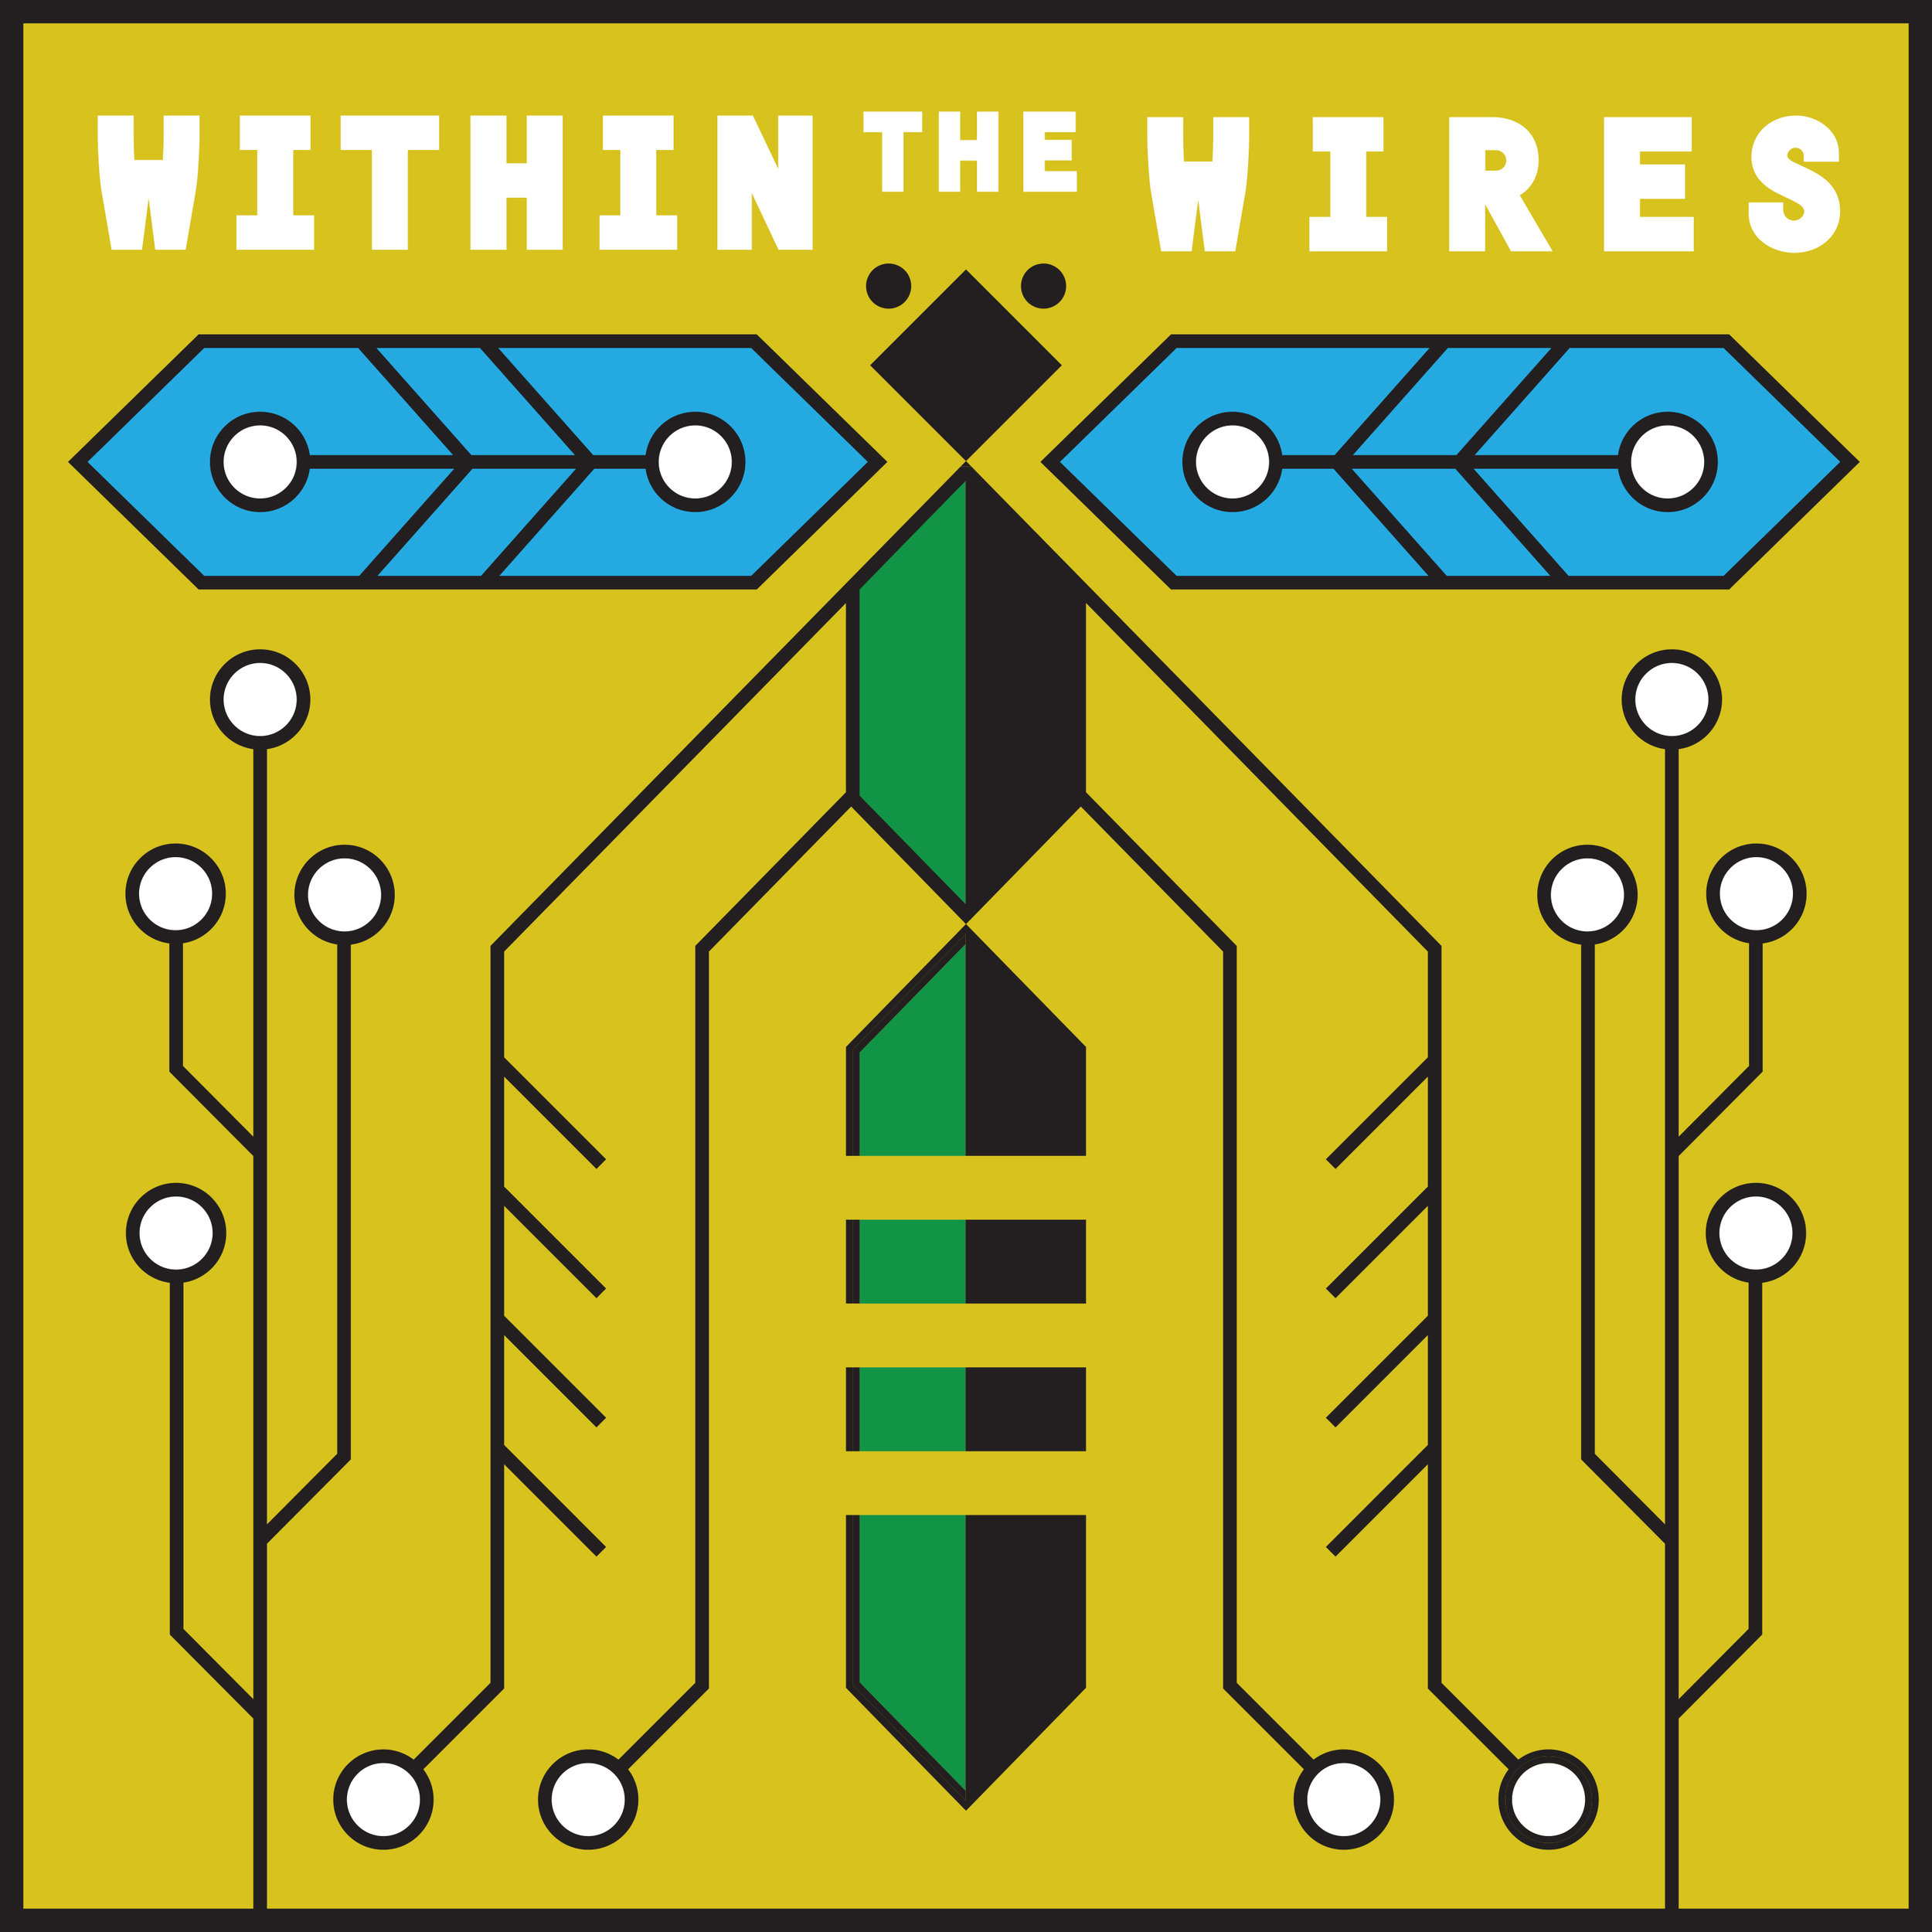 WithinTheWires.jpg